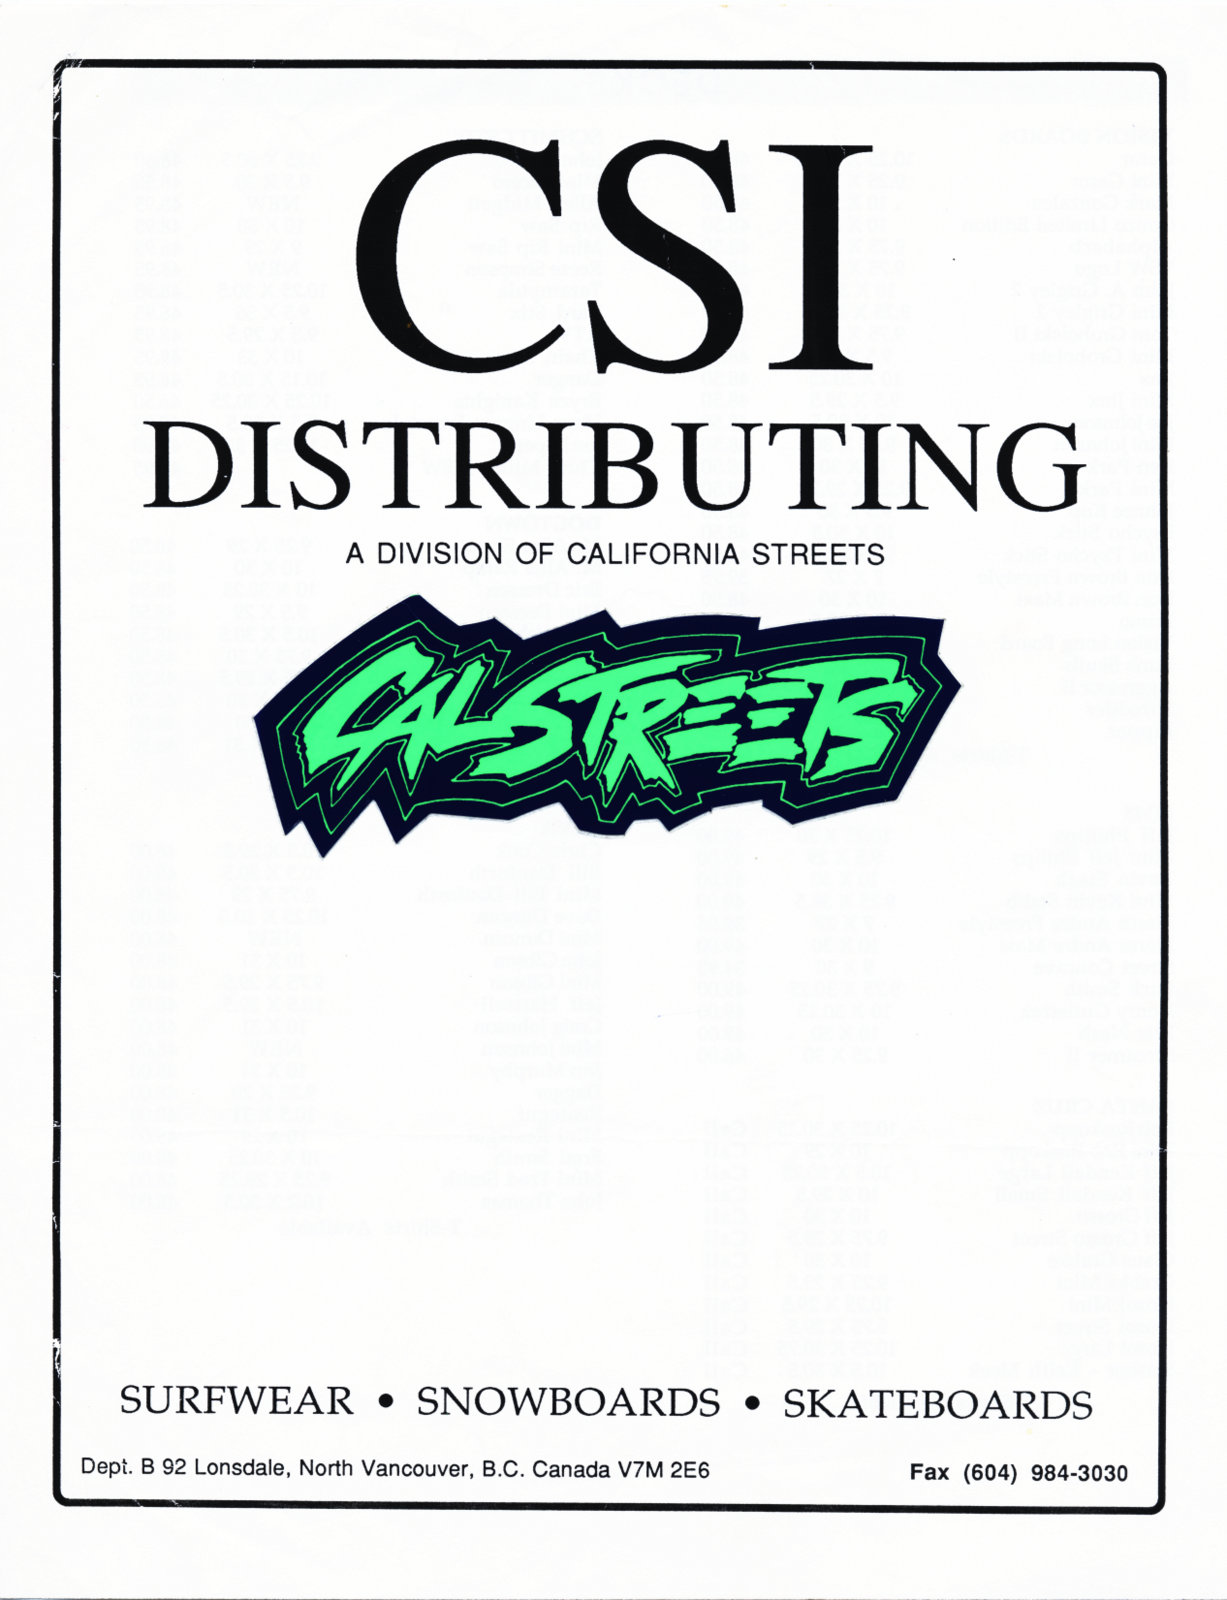 CSI-Cal-Streets-Industries-Catalog.jpg